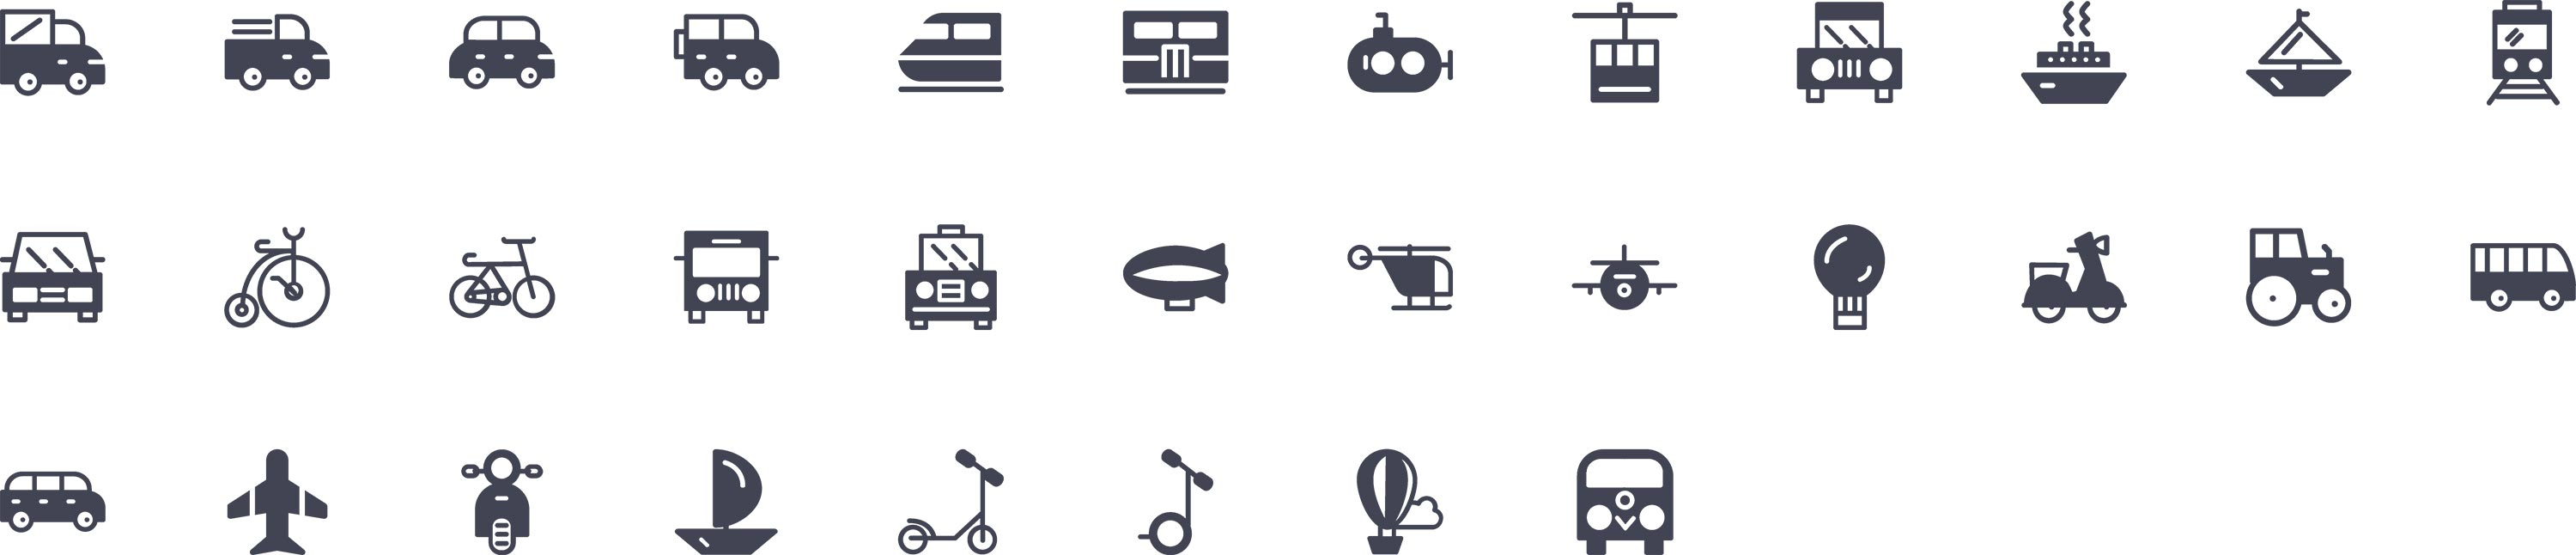 Transportation Glyph Icons